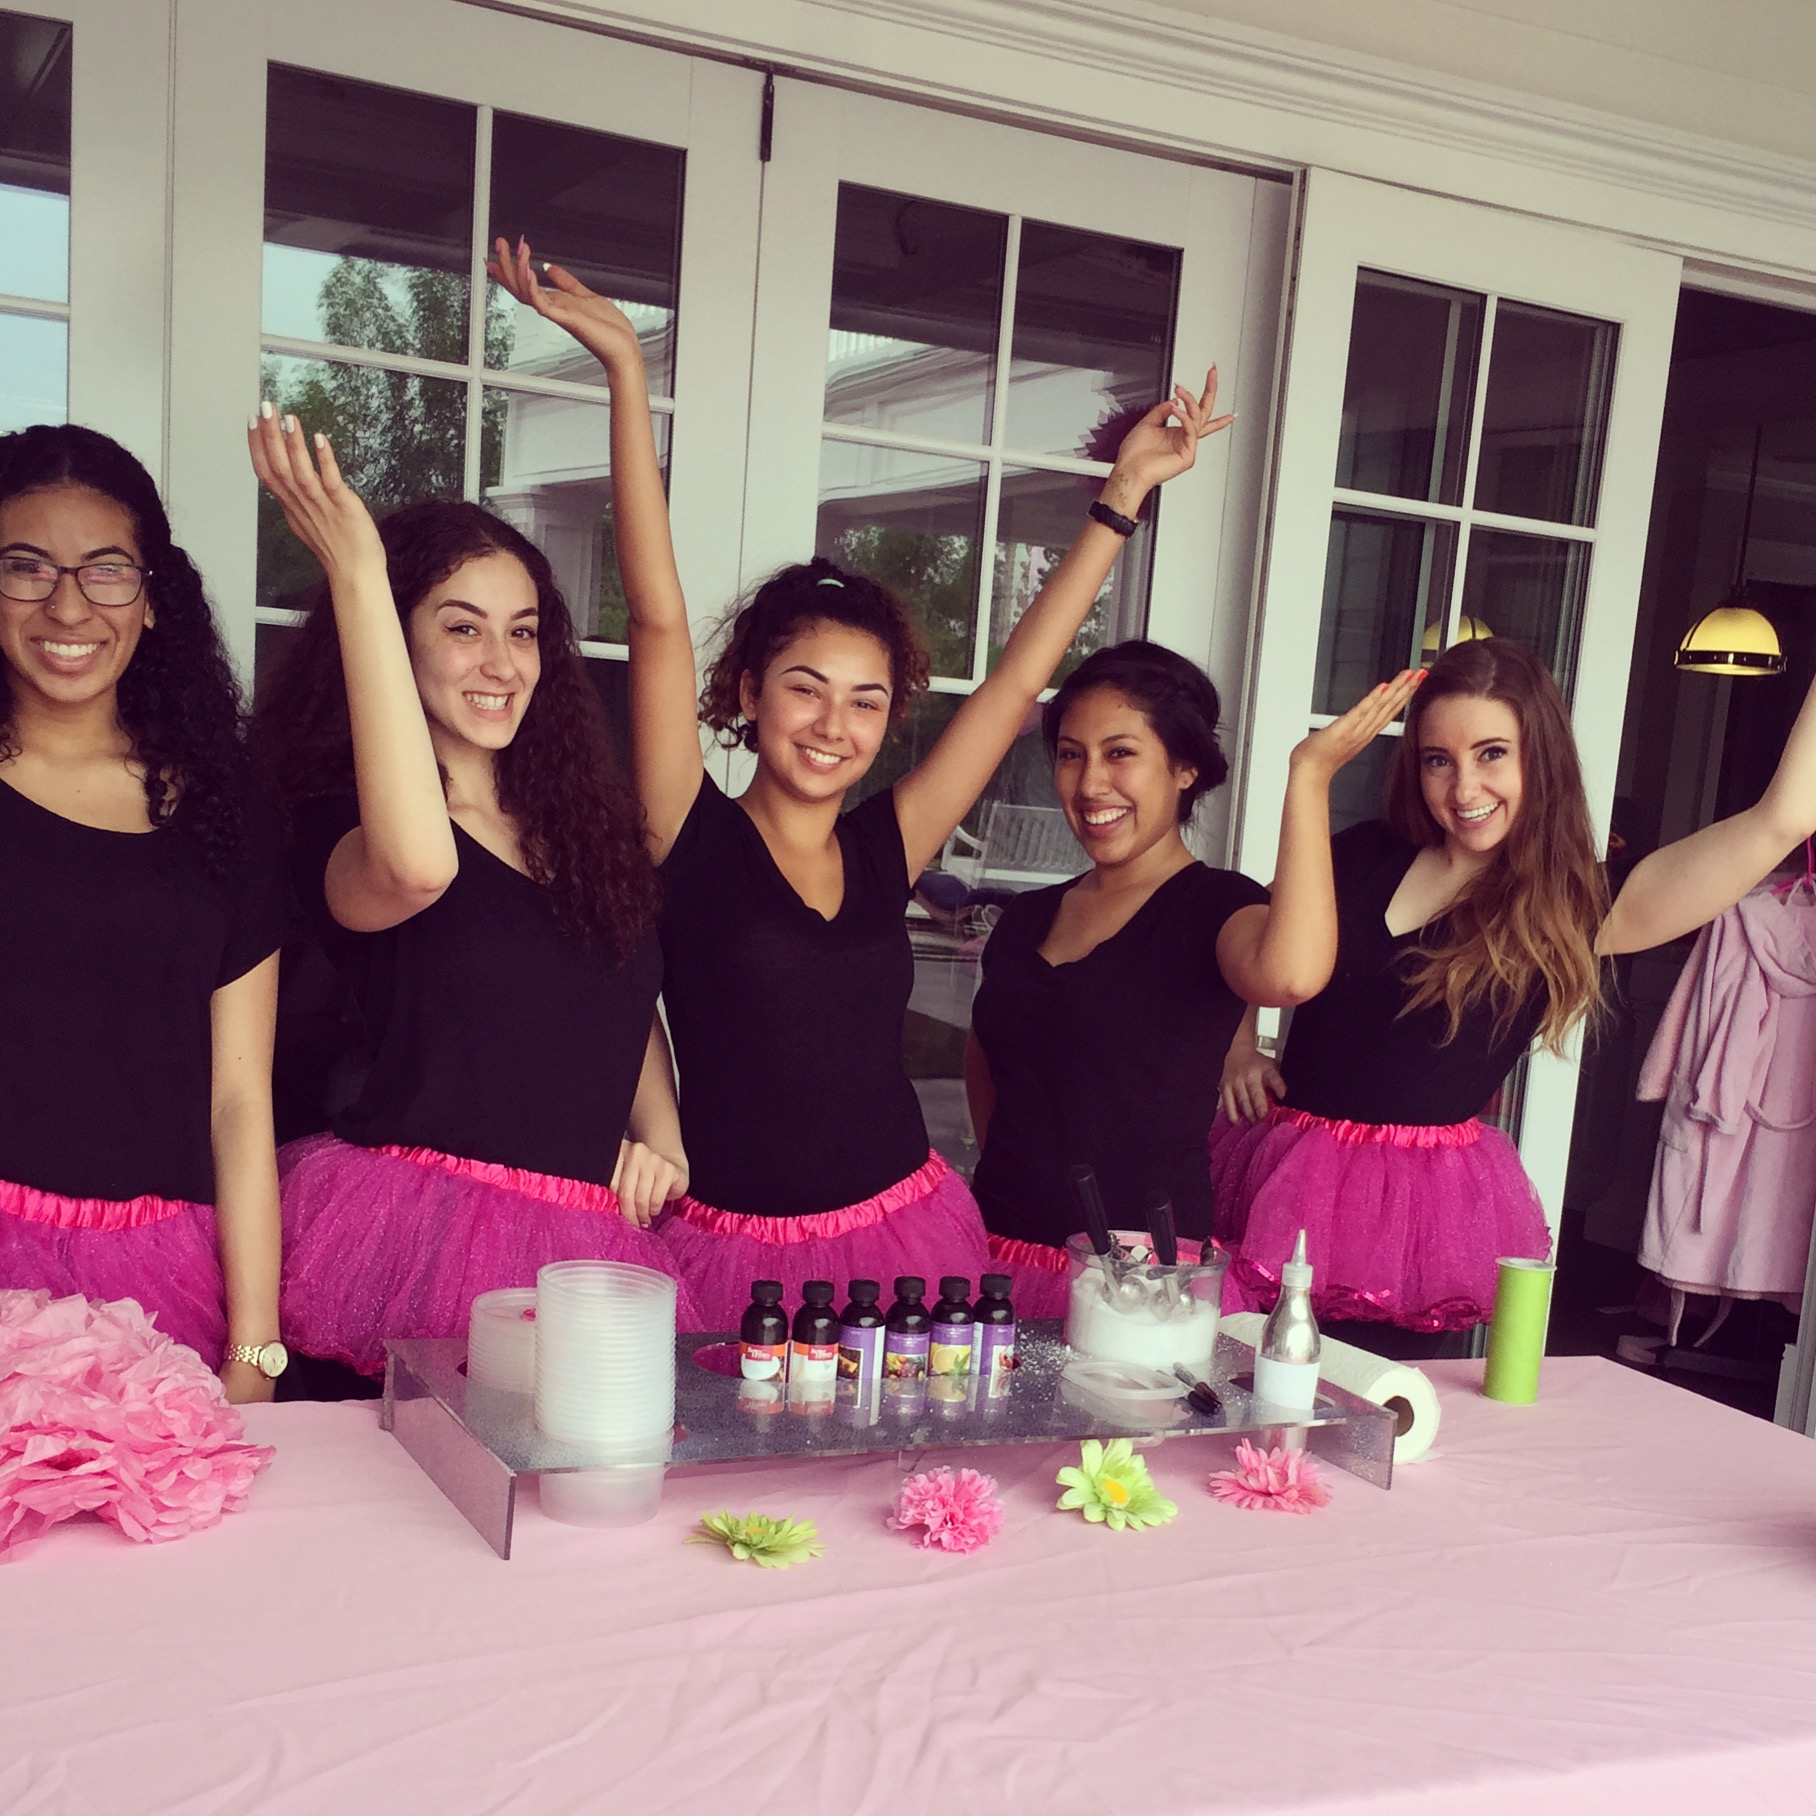 Our Fabulous Diva Girlz Party Hostesses Bring The To You